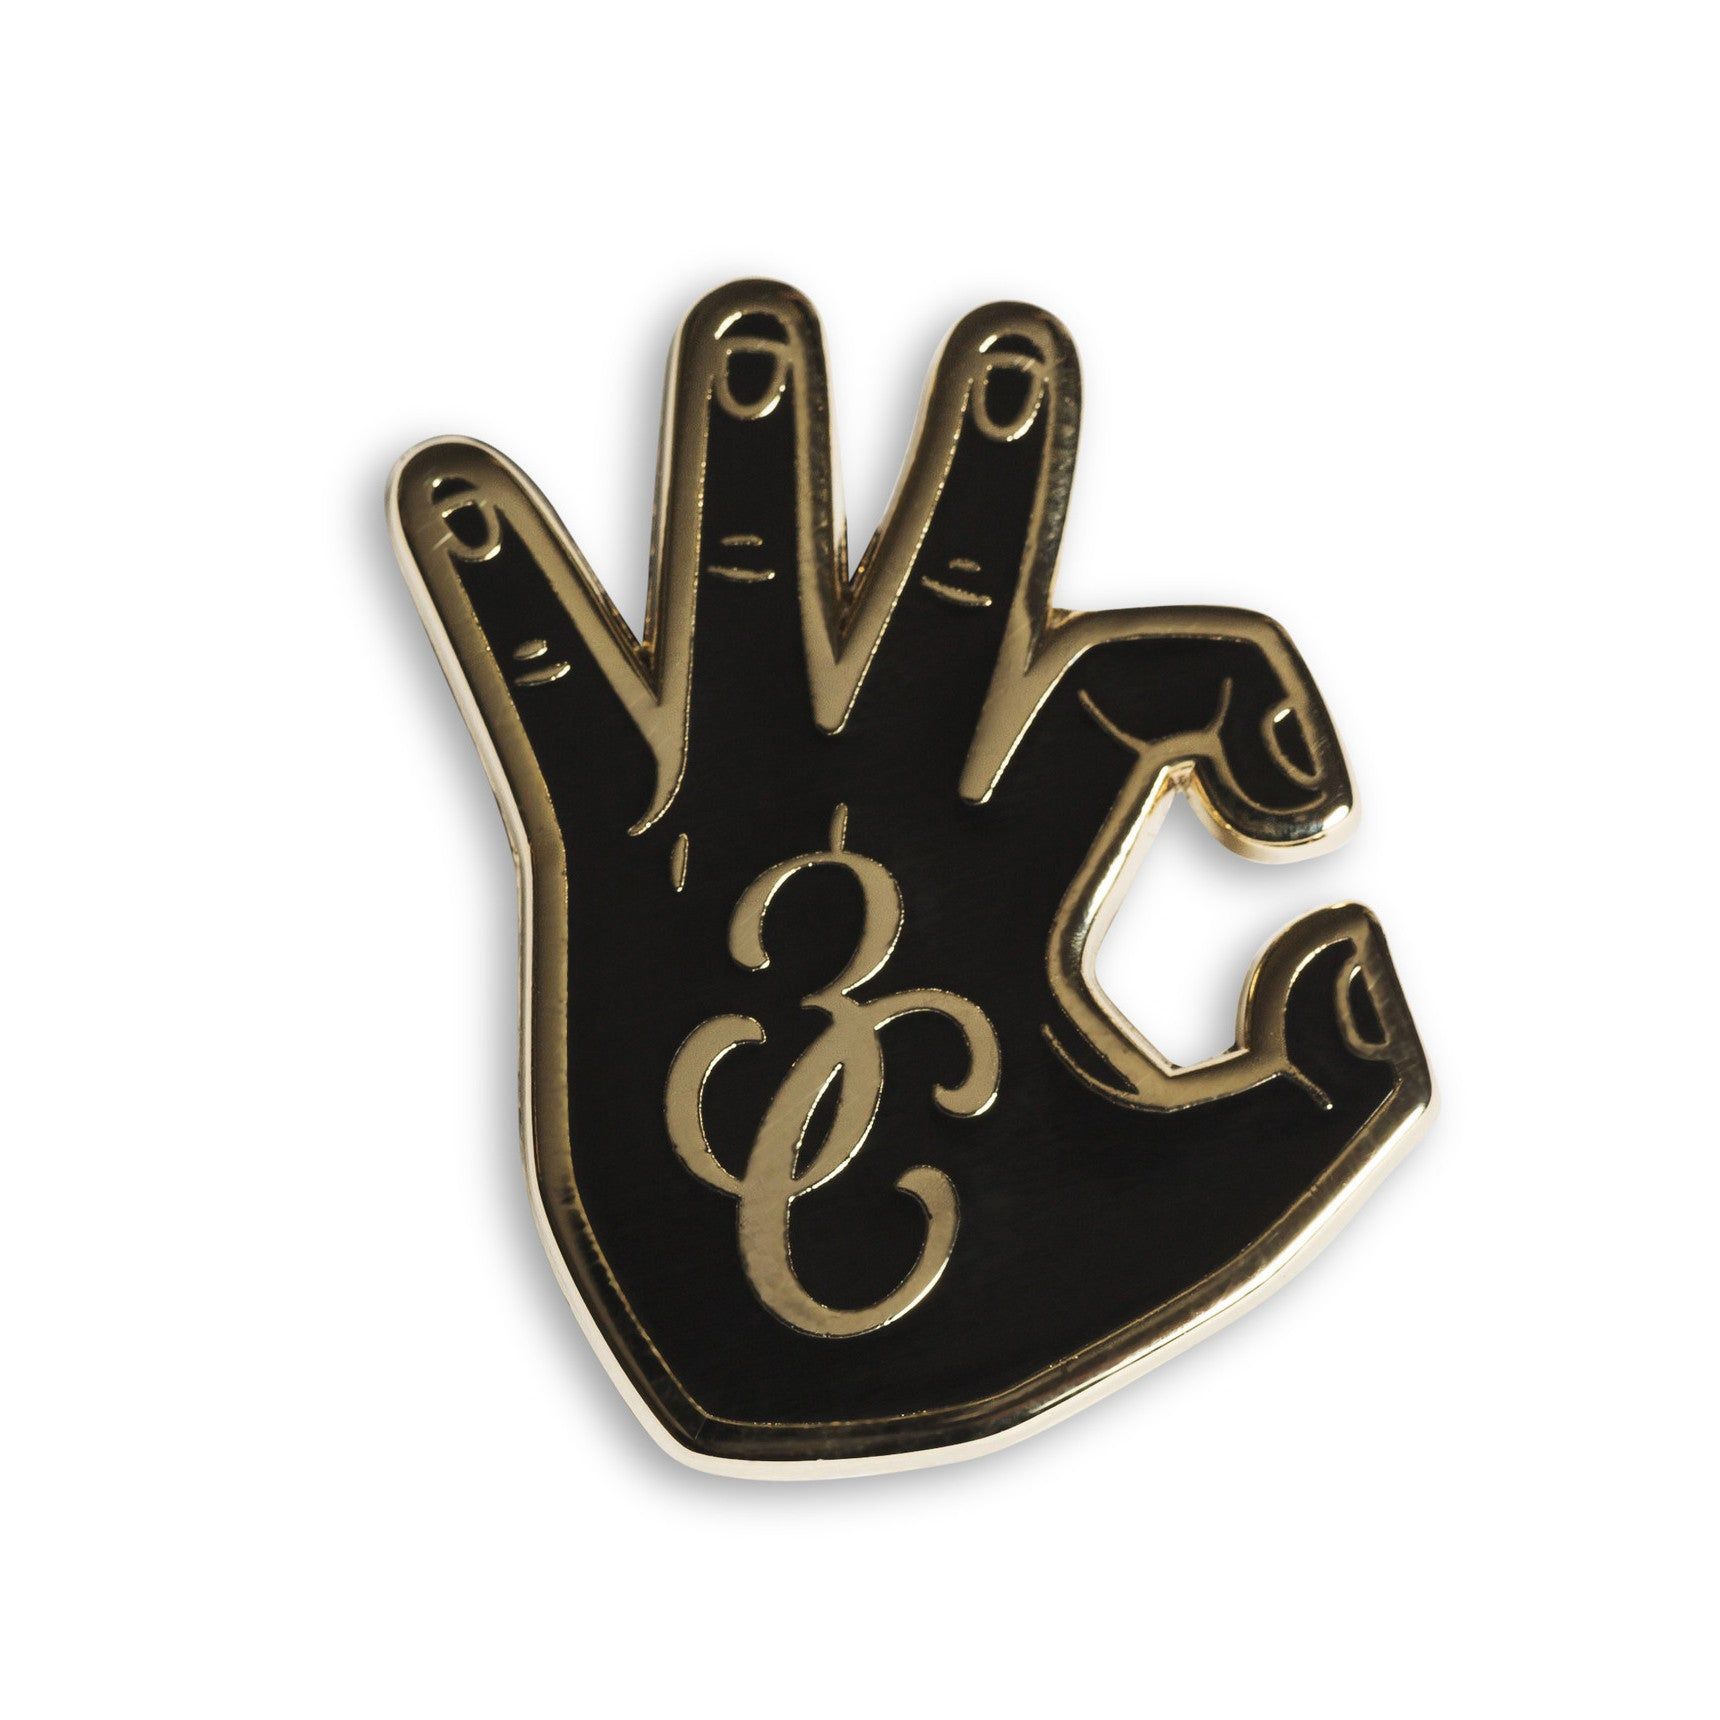 3C lapel pin - 3rd Chapter - Third Chapter